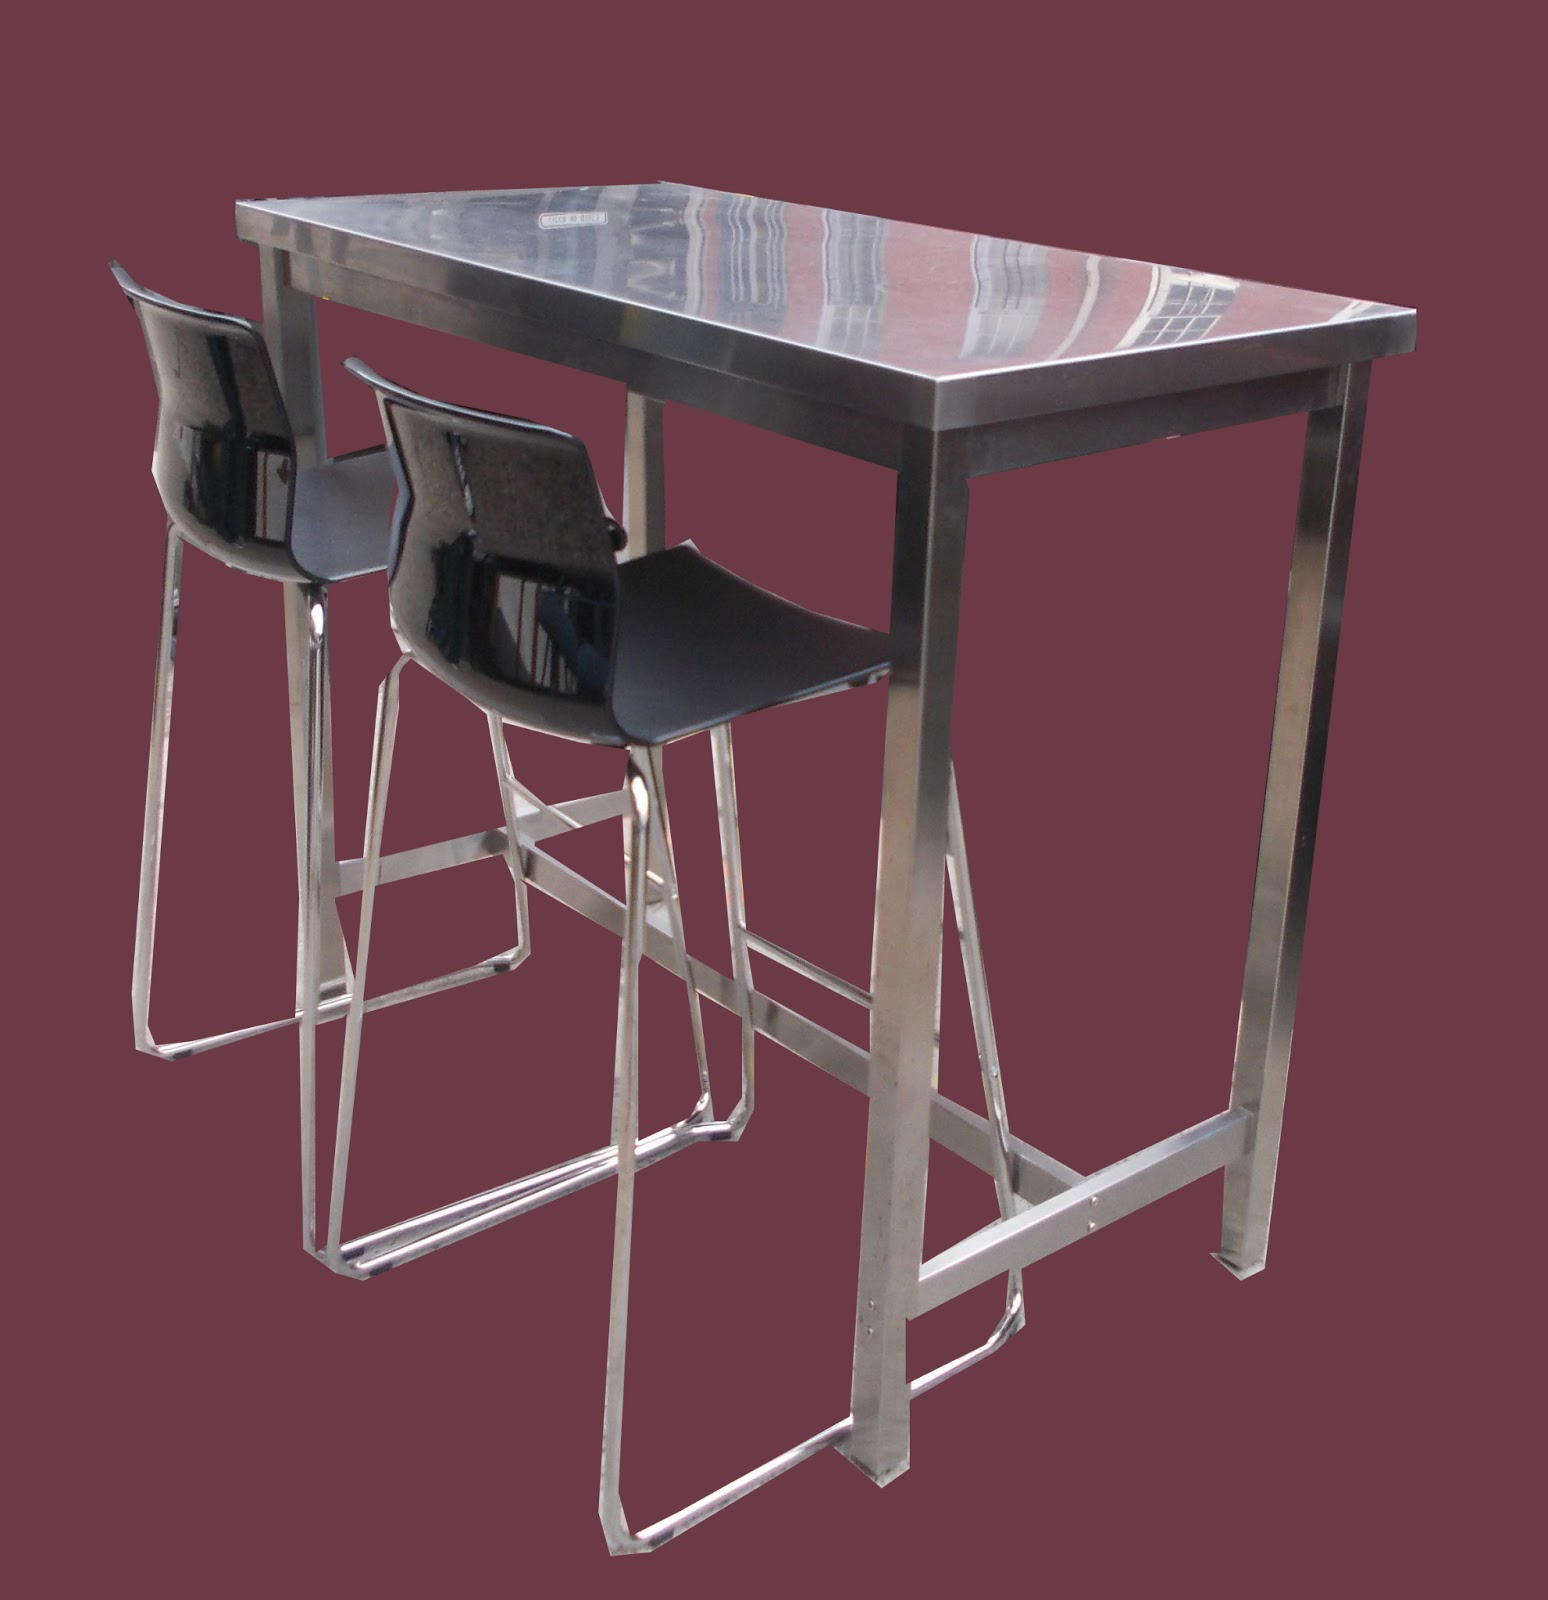 Counter Height Metal Table : ... Collectibles: Stainless Steel Counter Height Table + 2 Stools- SOLD